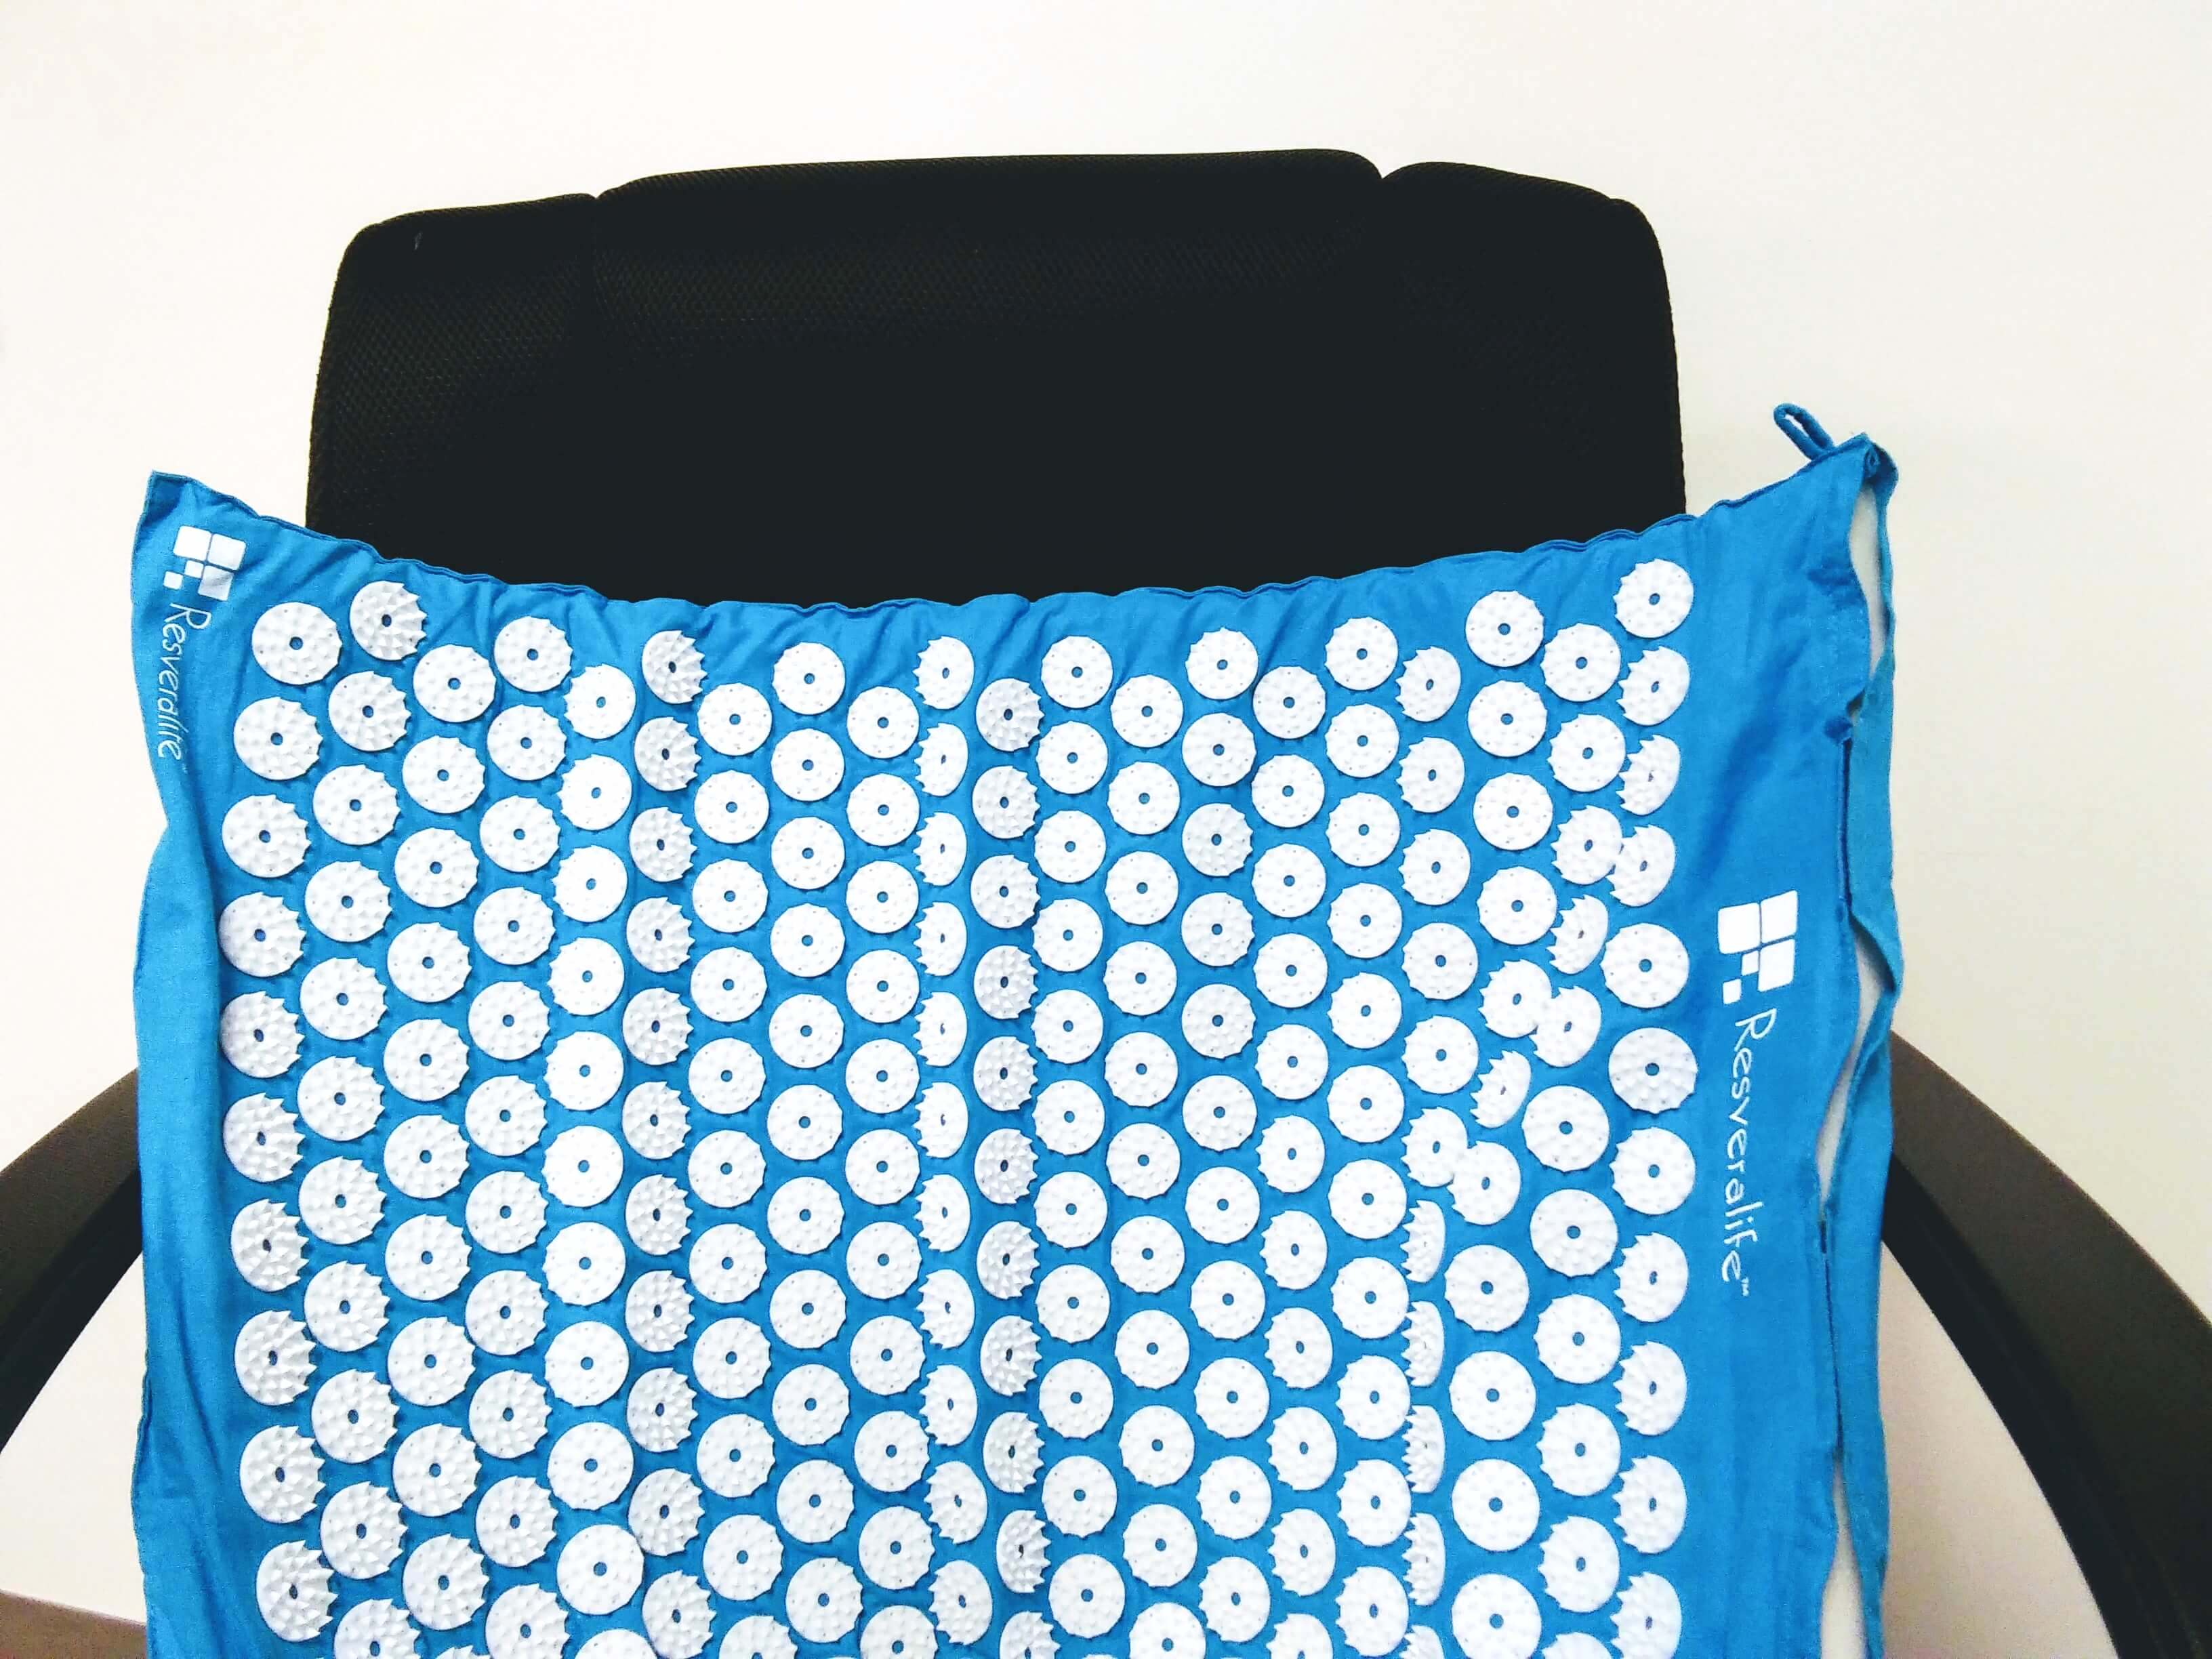 Resveralife Acupressure Mat review